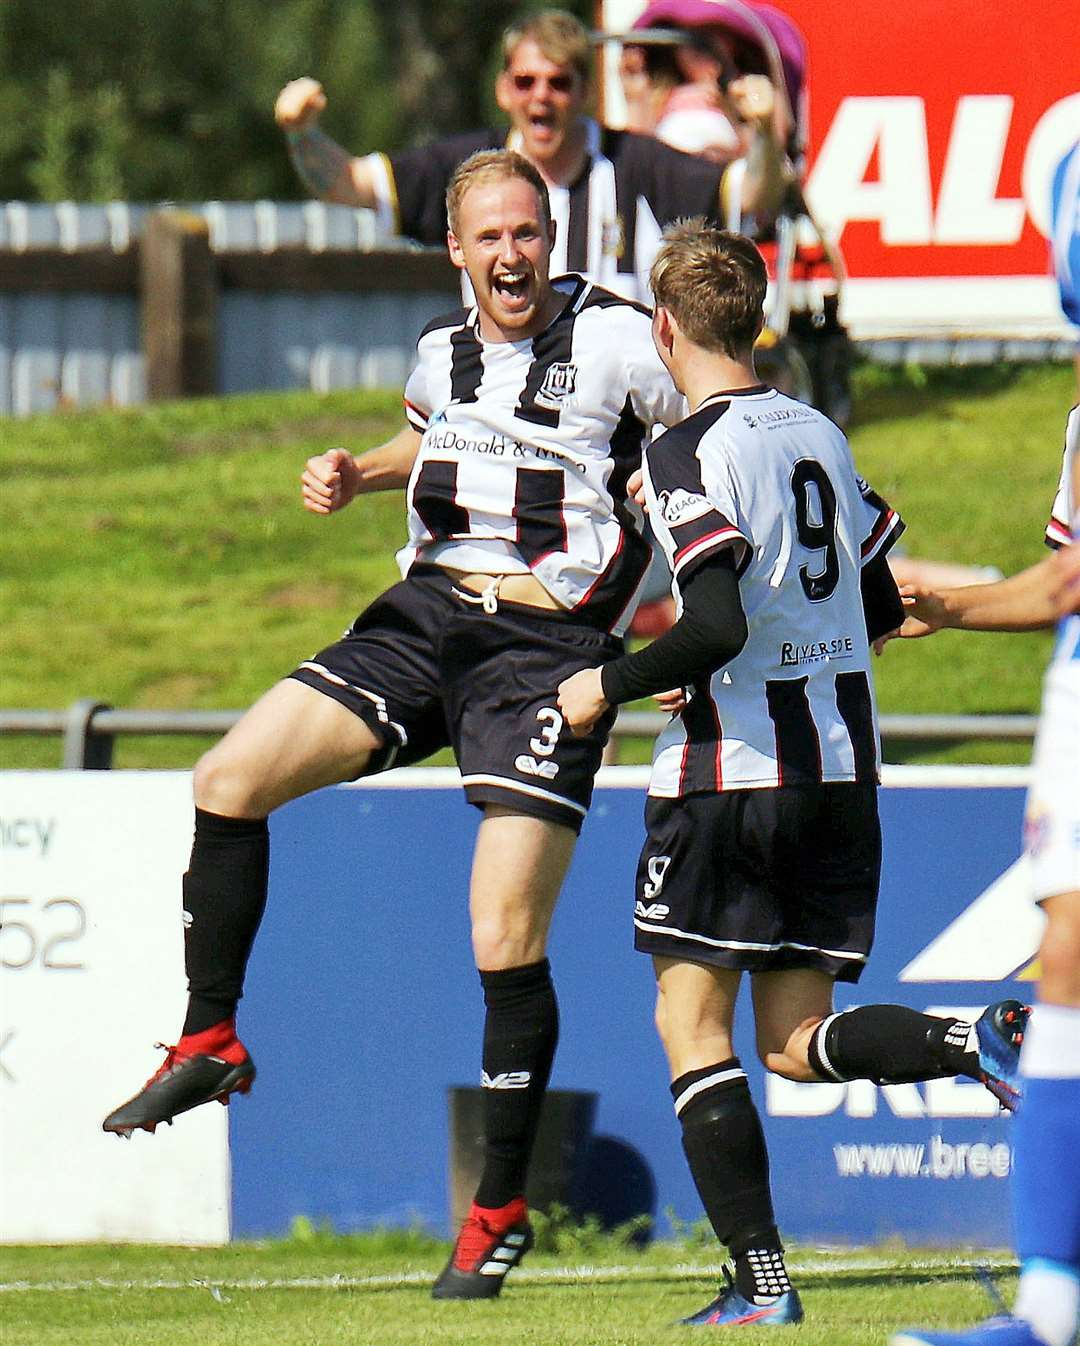 Elgin defender Euan Spark celebrates his goal against Stirling. Photo: Bob Crombie